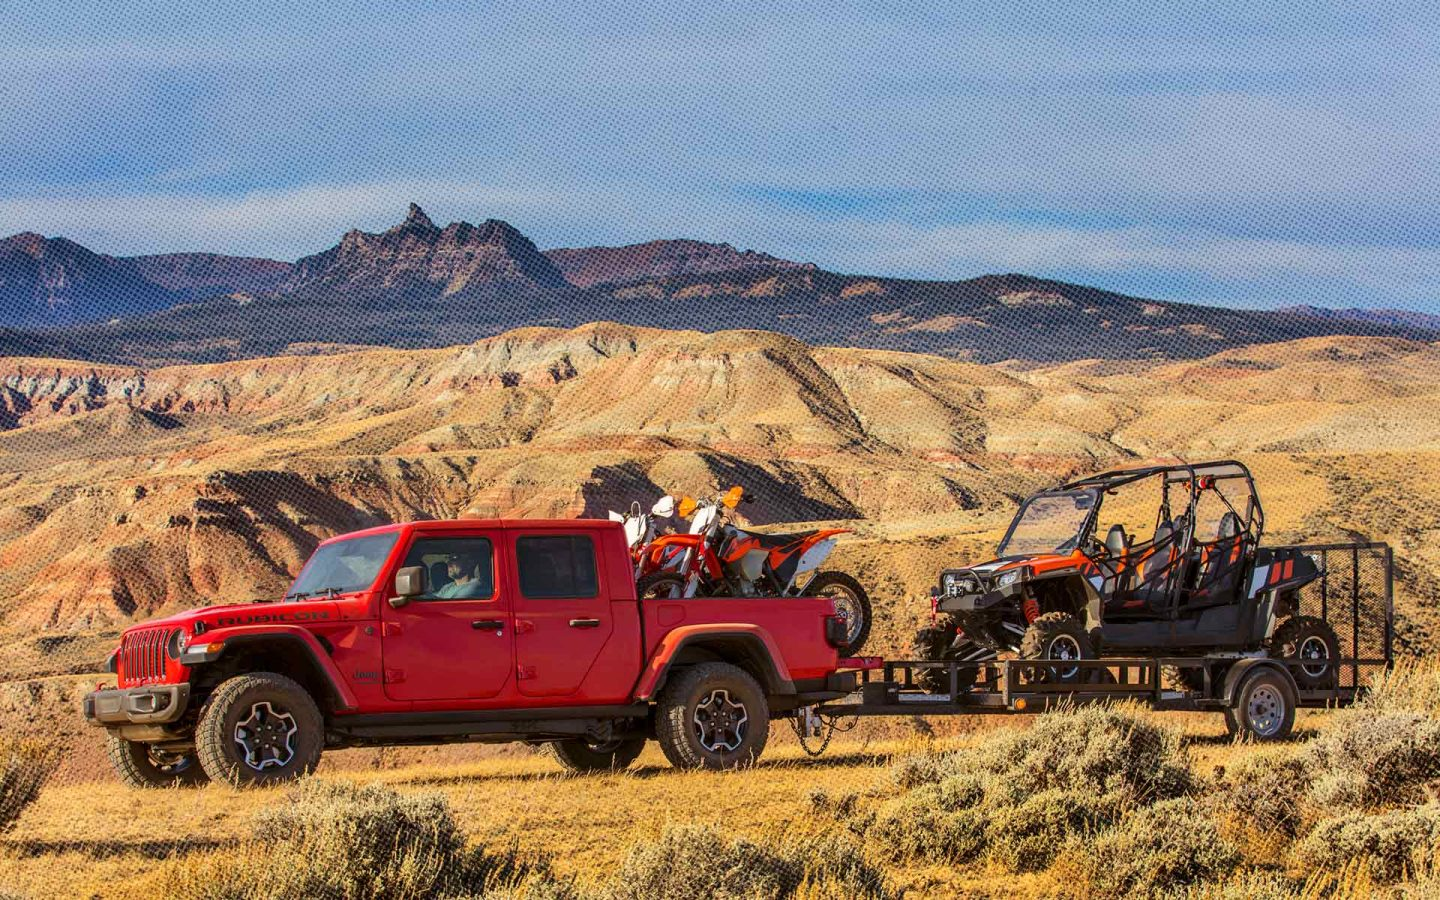 Red Gladiator with dirt bikes in truck bed towing an offroad vehicle